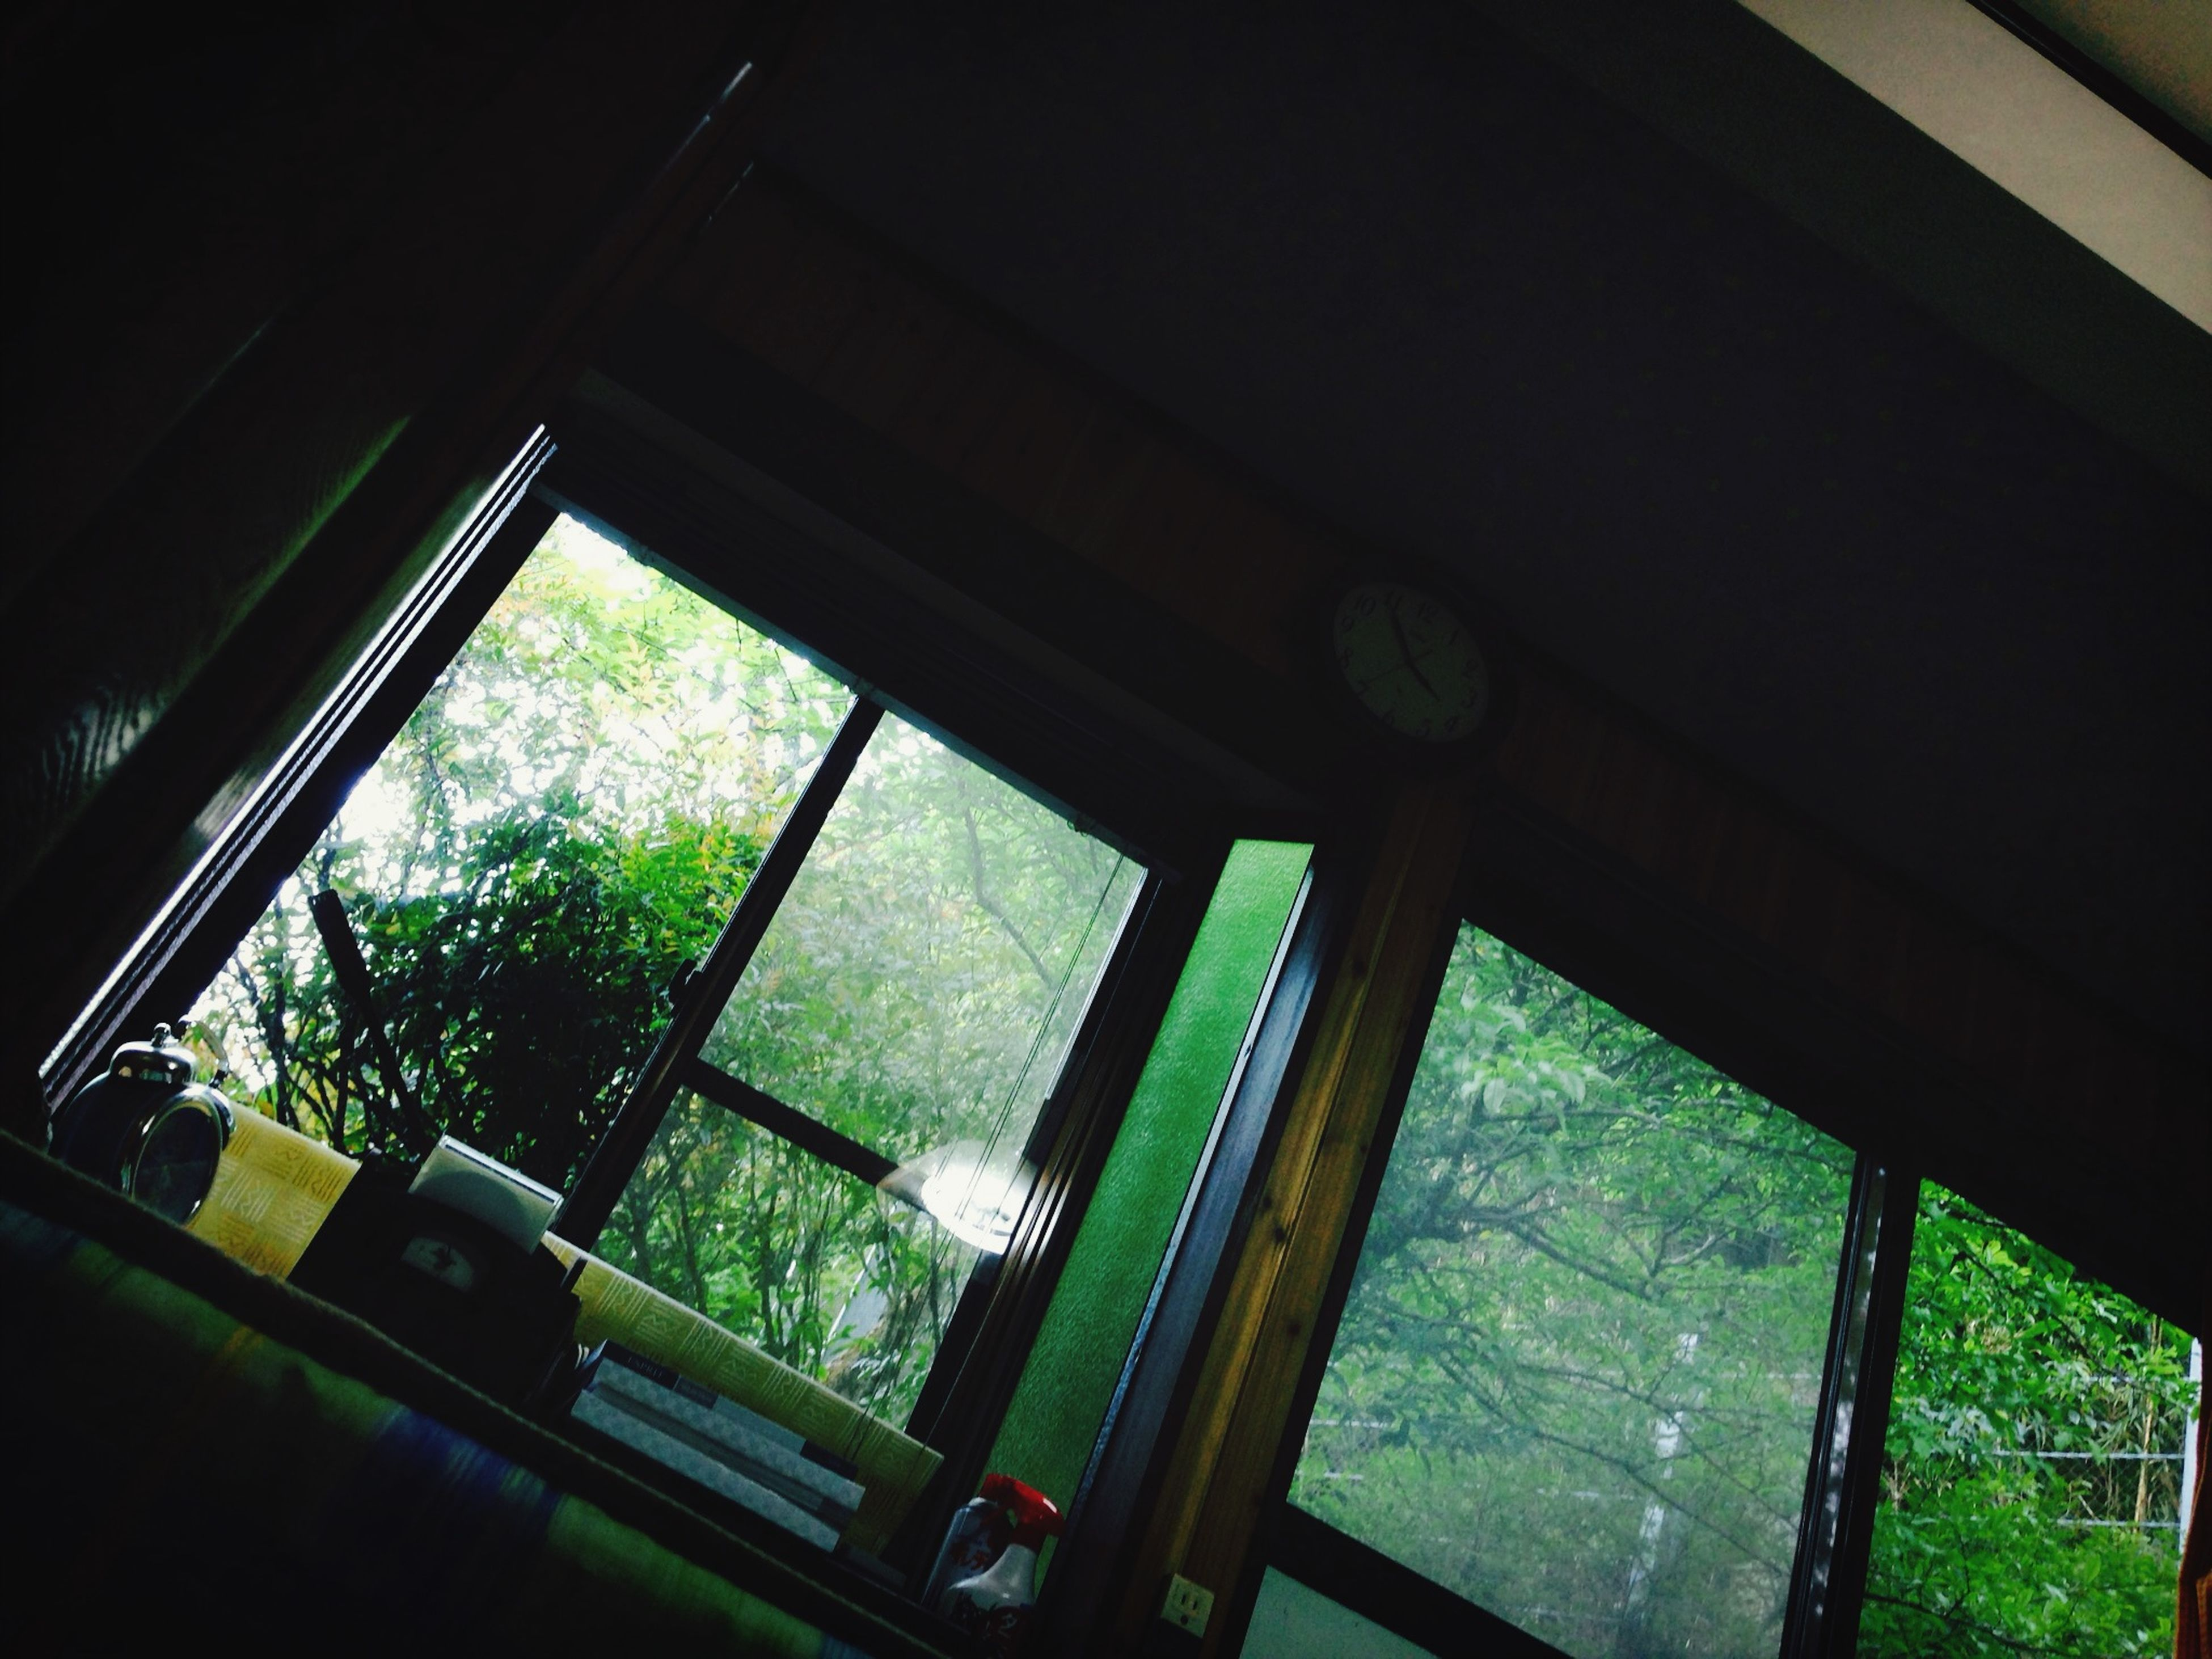 window, indoors, architecture, glass - material, built structure, low angle view, railing, transparent, no people, metal, building exterior, day, house, green color, sunlight, tree, building, reflection, growth